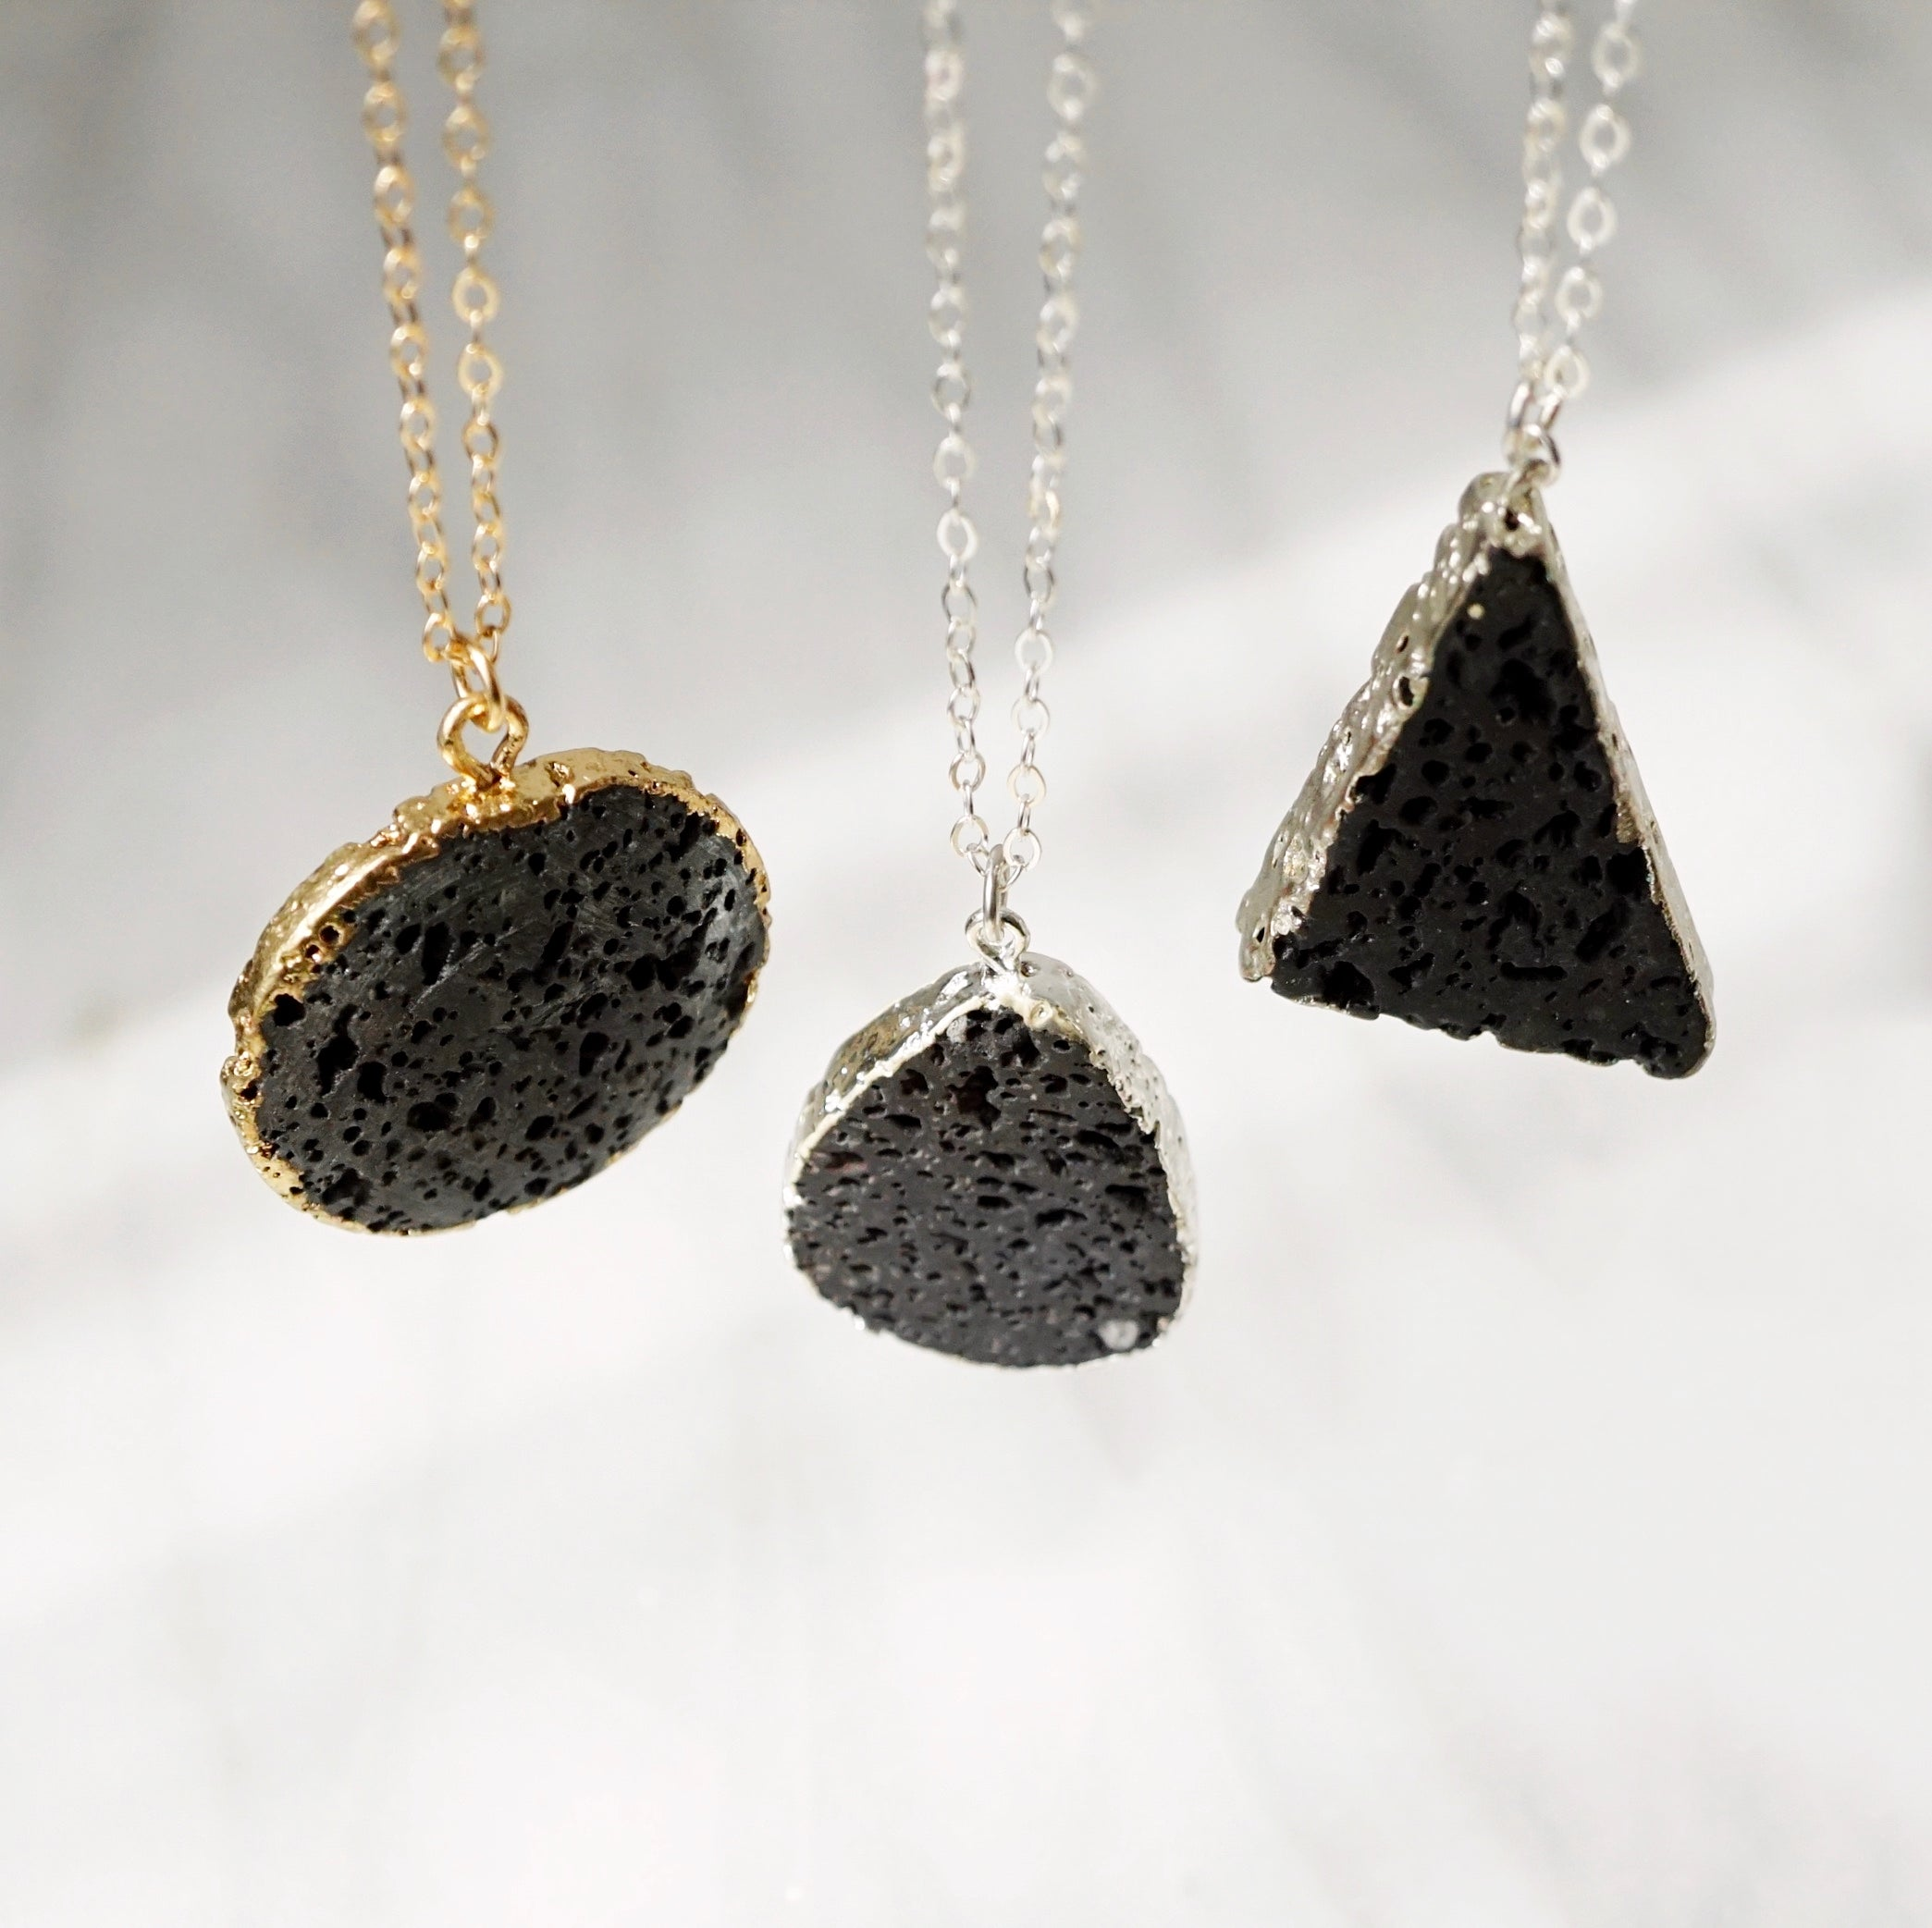 Electroplated Lava Pendant Aromatherapy Necklace, Choose your stone [G]+[S] - Lava Essential Oils